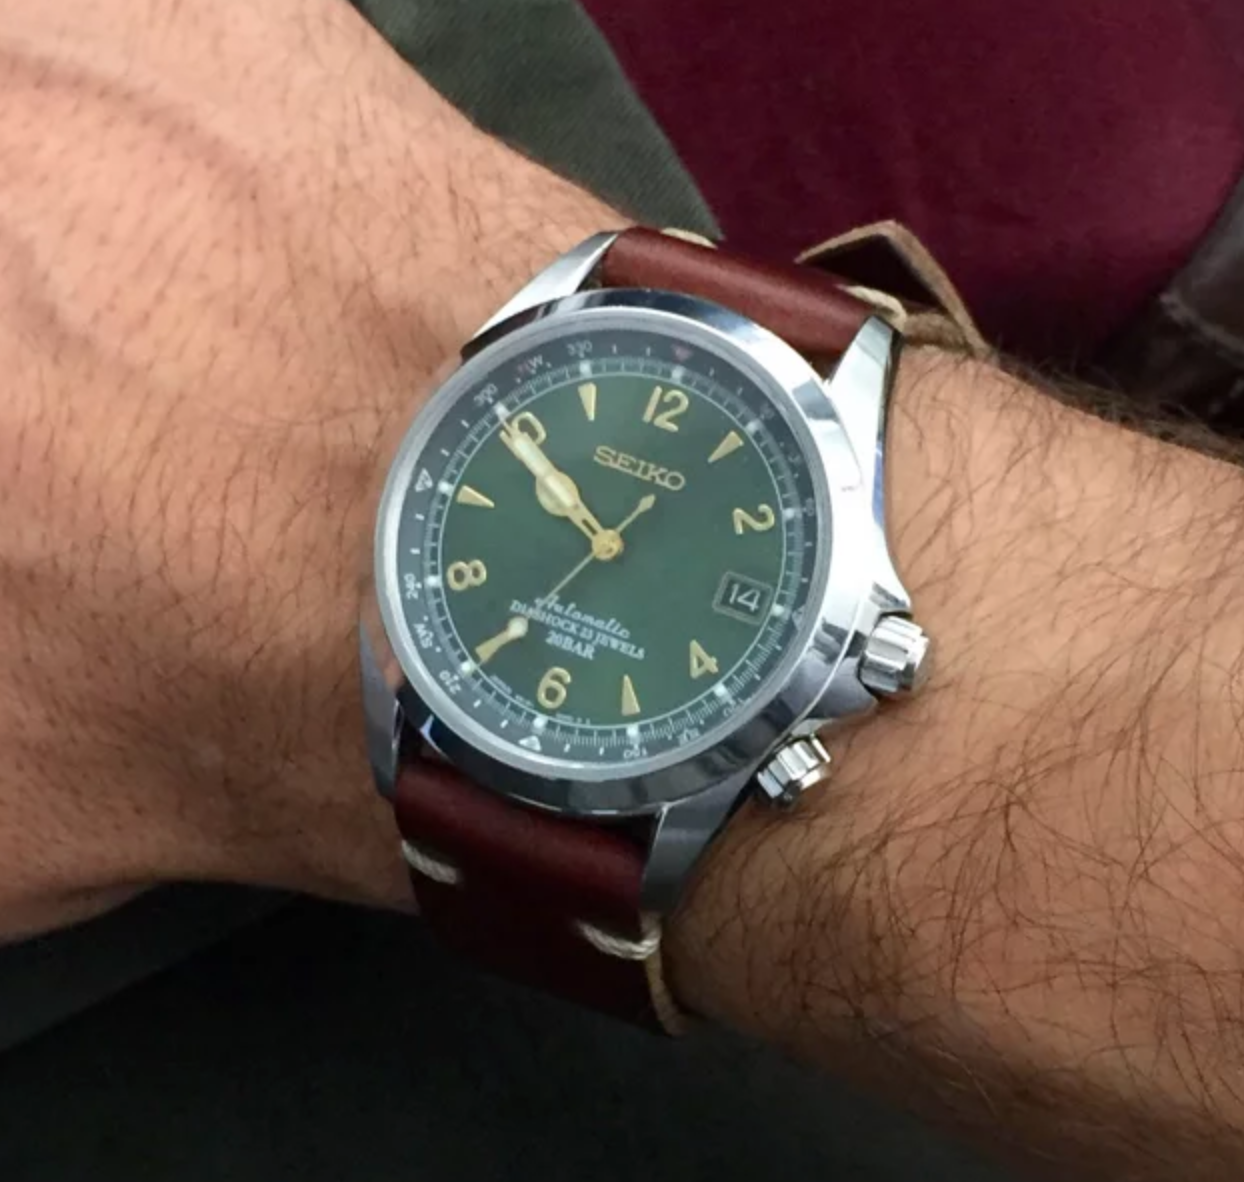 The Green Alpinist SARB017, Seiko Alpinist